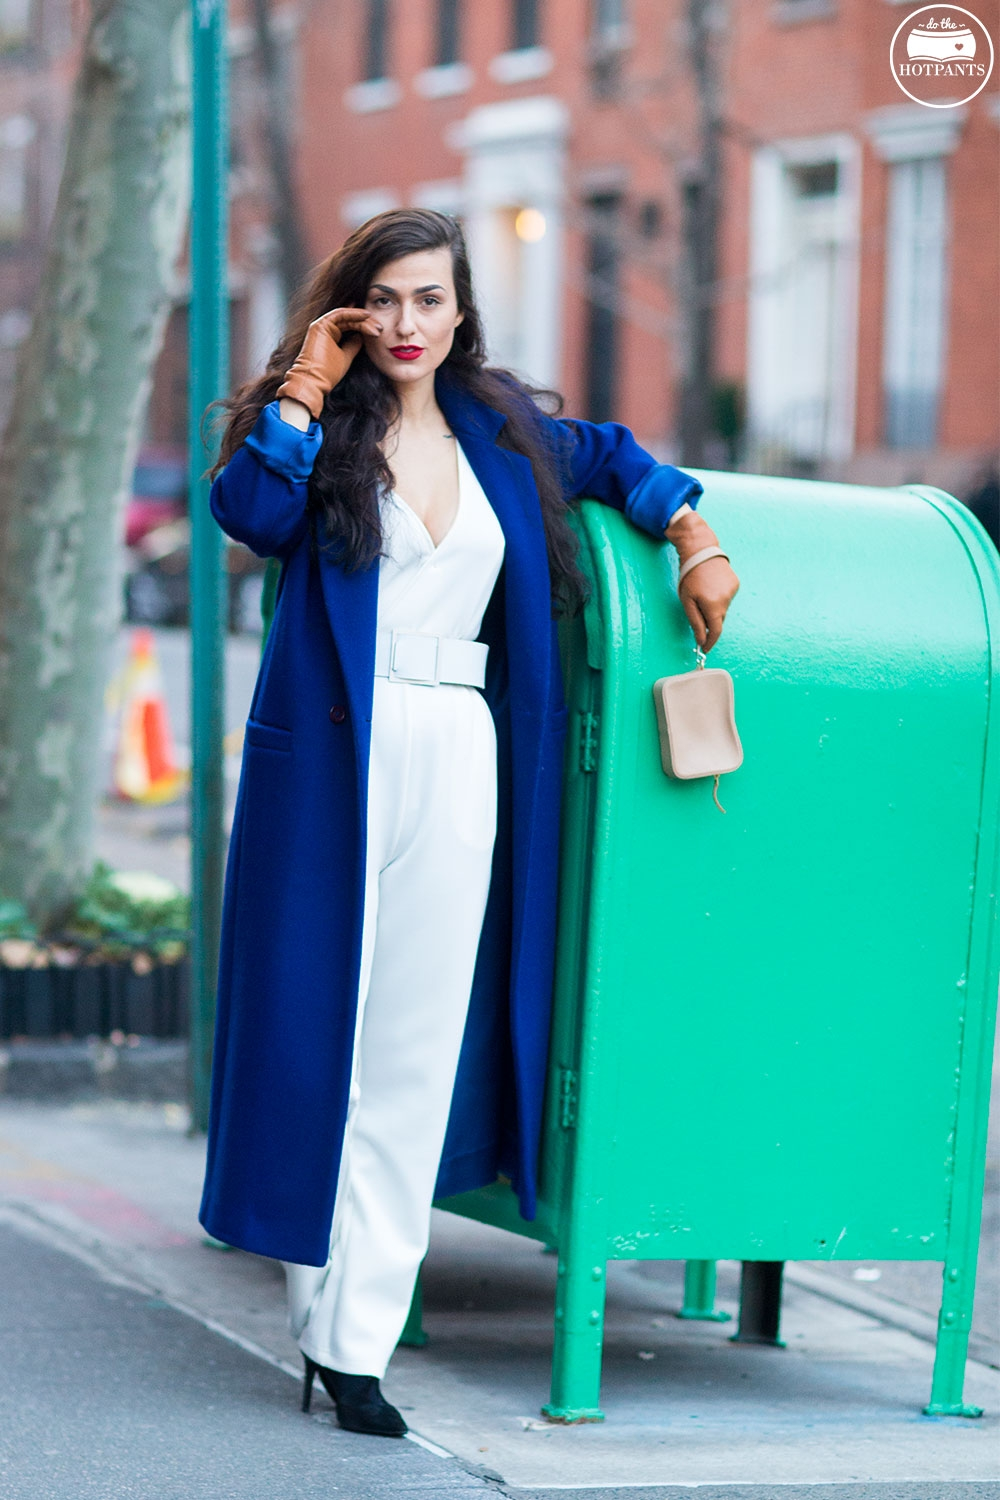 Do The Hotpants Dana Suchow White Jumpsuit Navu Blue Peacoat Trench